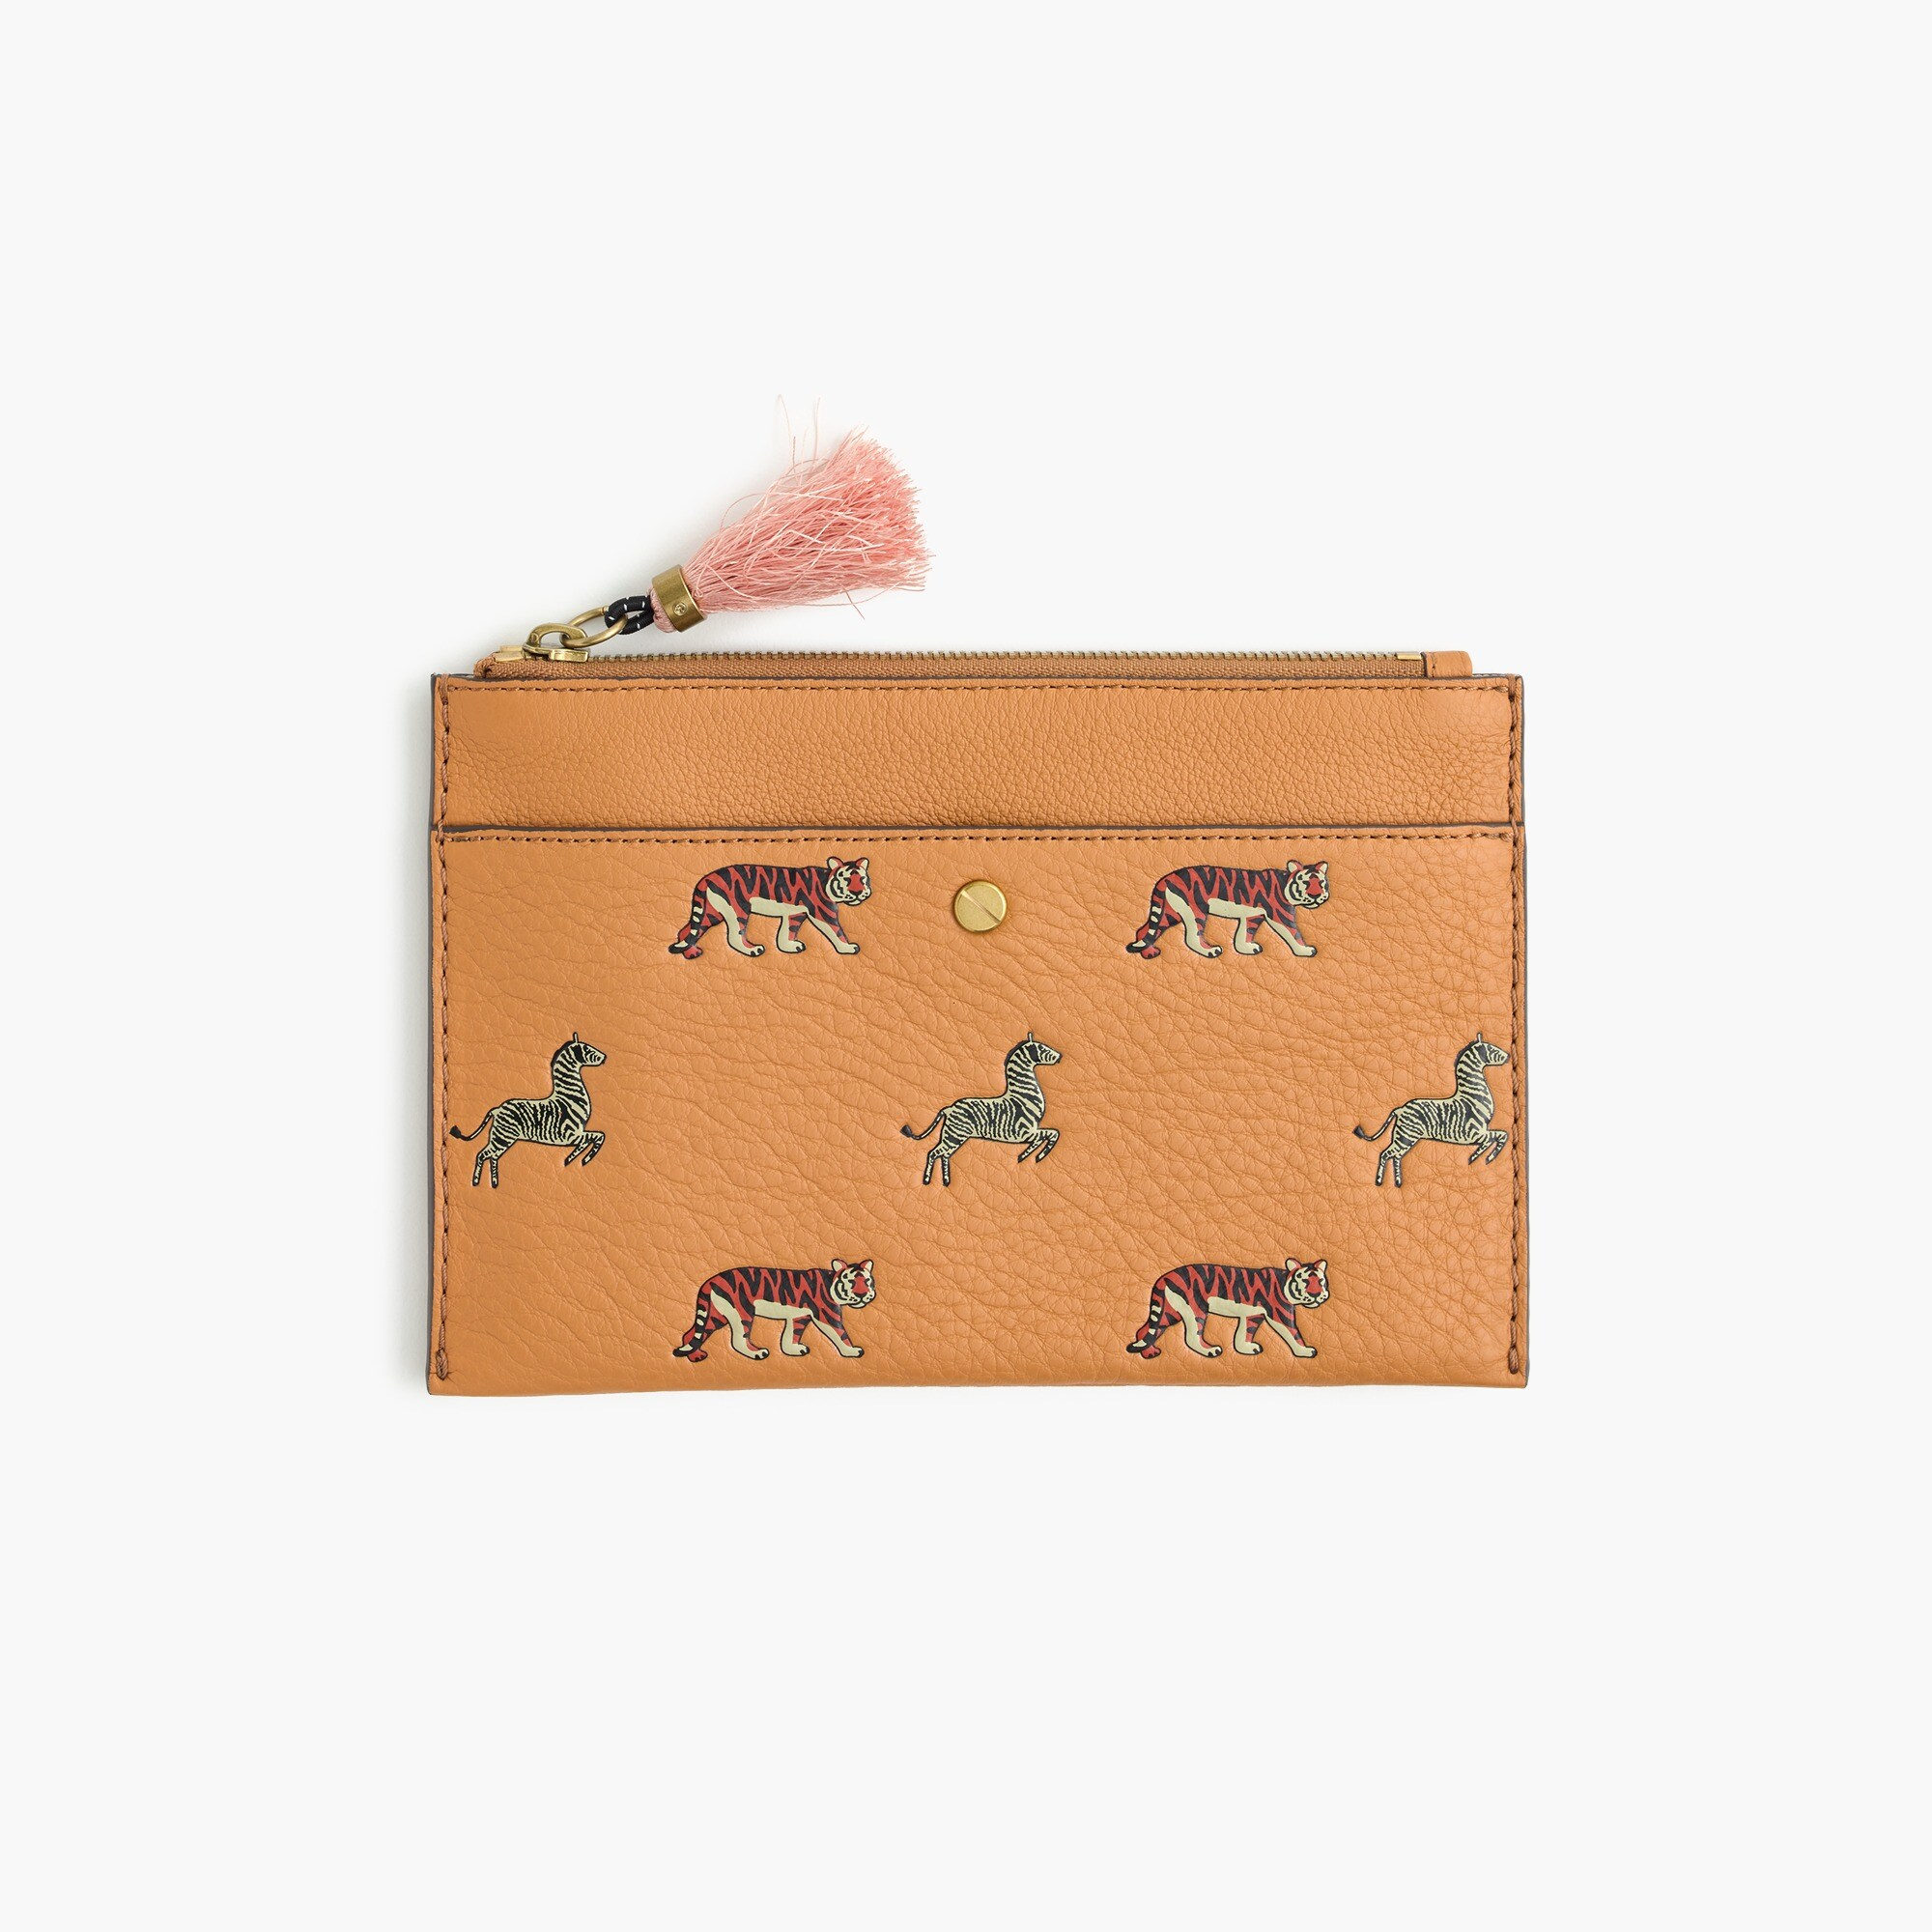 medium pouch in embossed animal print : women small leather goods